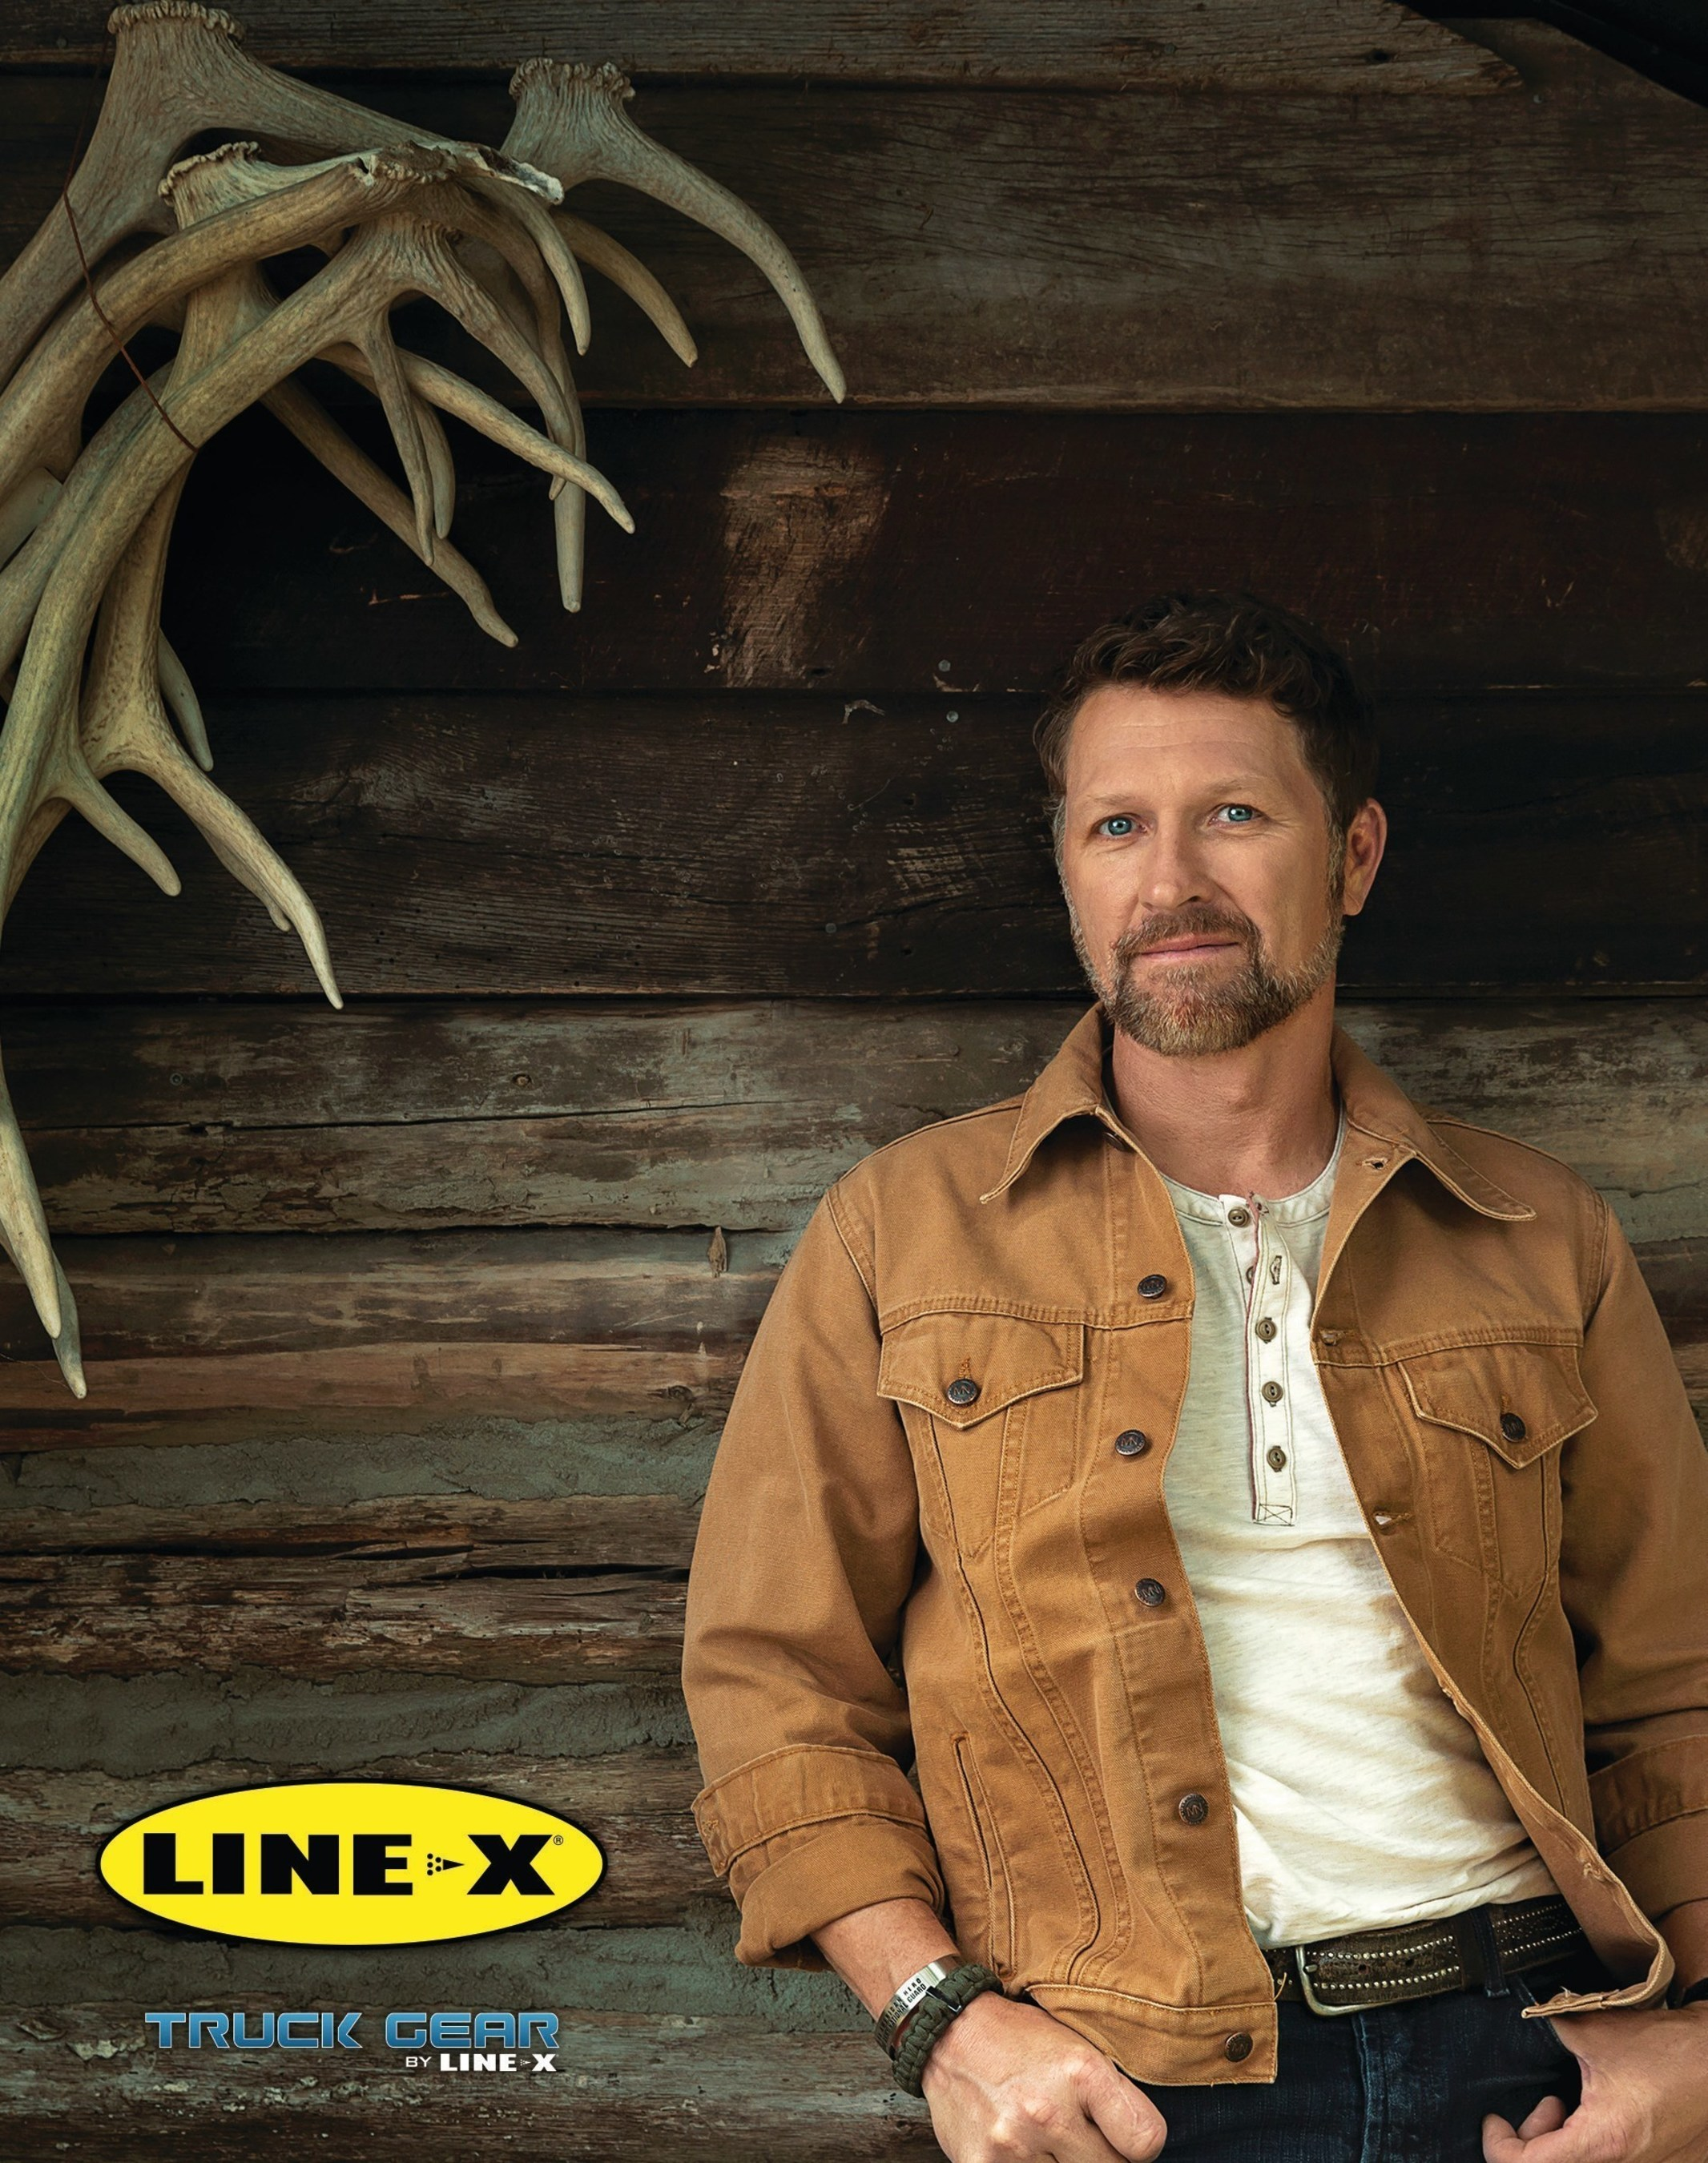 """A multi-faceted entertainer, Craig Morgan has made a name for himself as a country music icon, TV host, celebrated outdoorsman and patriotic Army veteran. One of country music's best-loved artists, the Black River Entertainment artist thrills massive crowds with signature hits including """"Bonfire,"""" """"Almost Home,"""" """"Redneck Yacht Club,"""" """"International Harvester,"""" """"This Ole Boy,"""" """"Wake Up Lovin' You"""" and the six week #1, """"That's What I Love About Sunday."""" The new single """"When I'm Gone"""" is available for digital download now and will lead a new album due in 2016."""